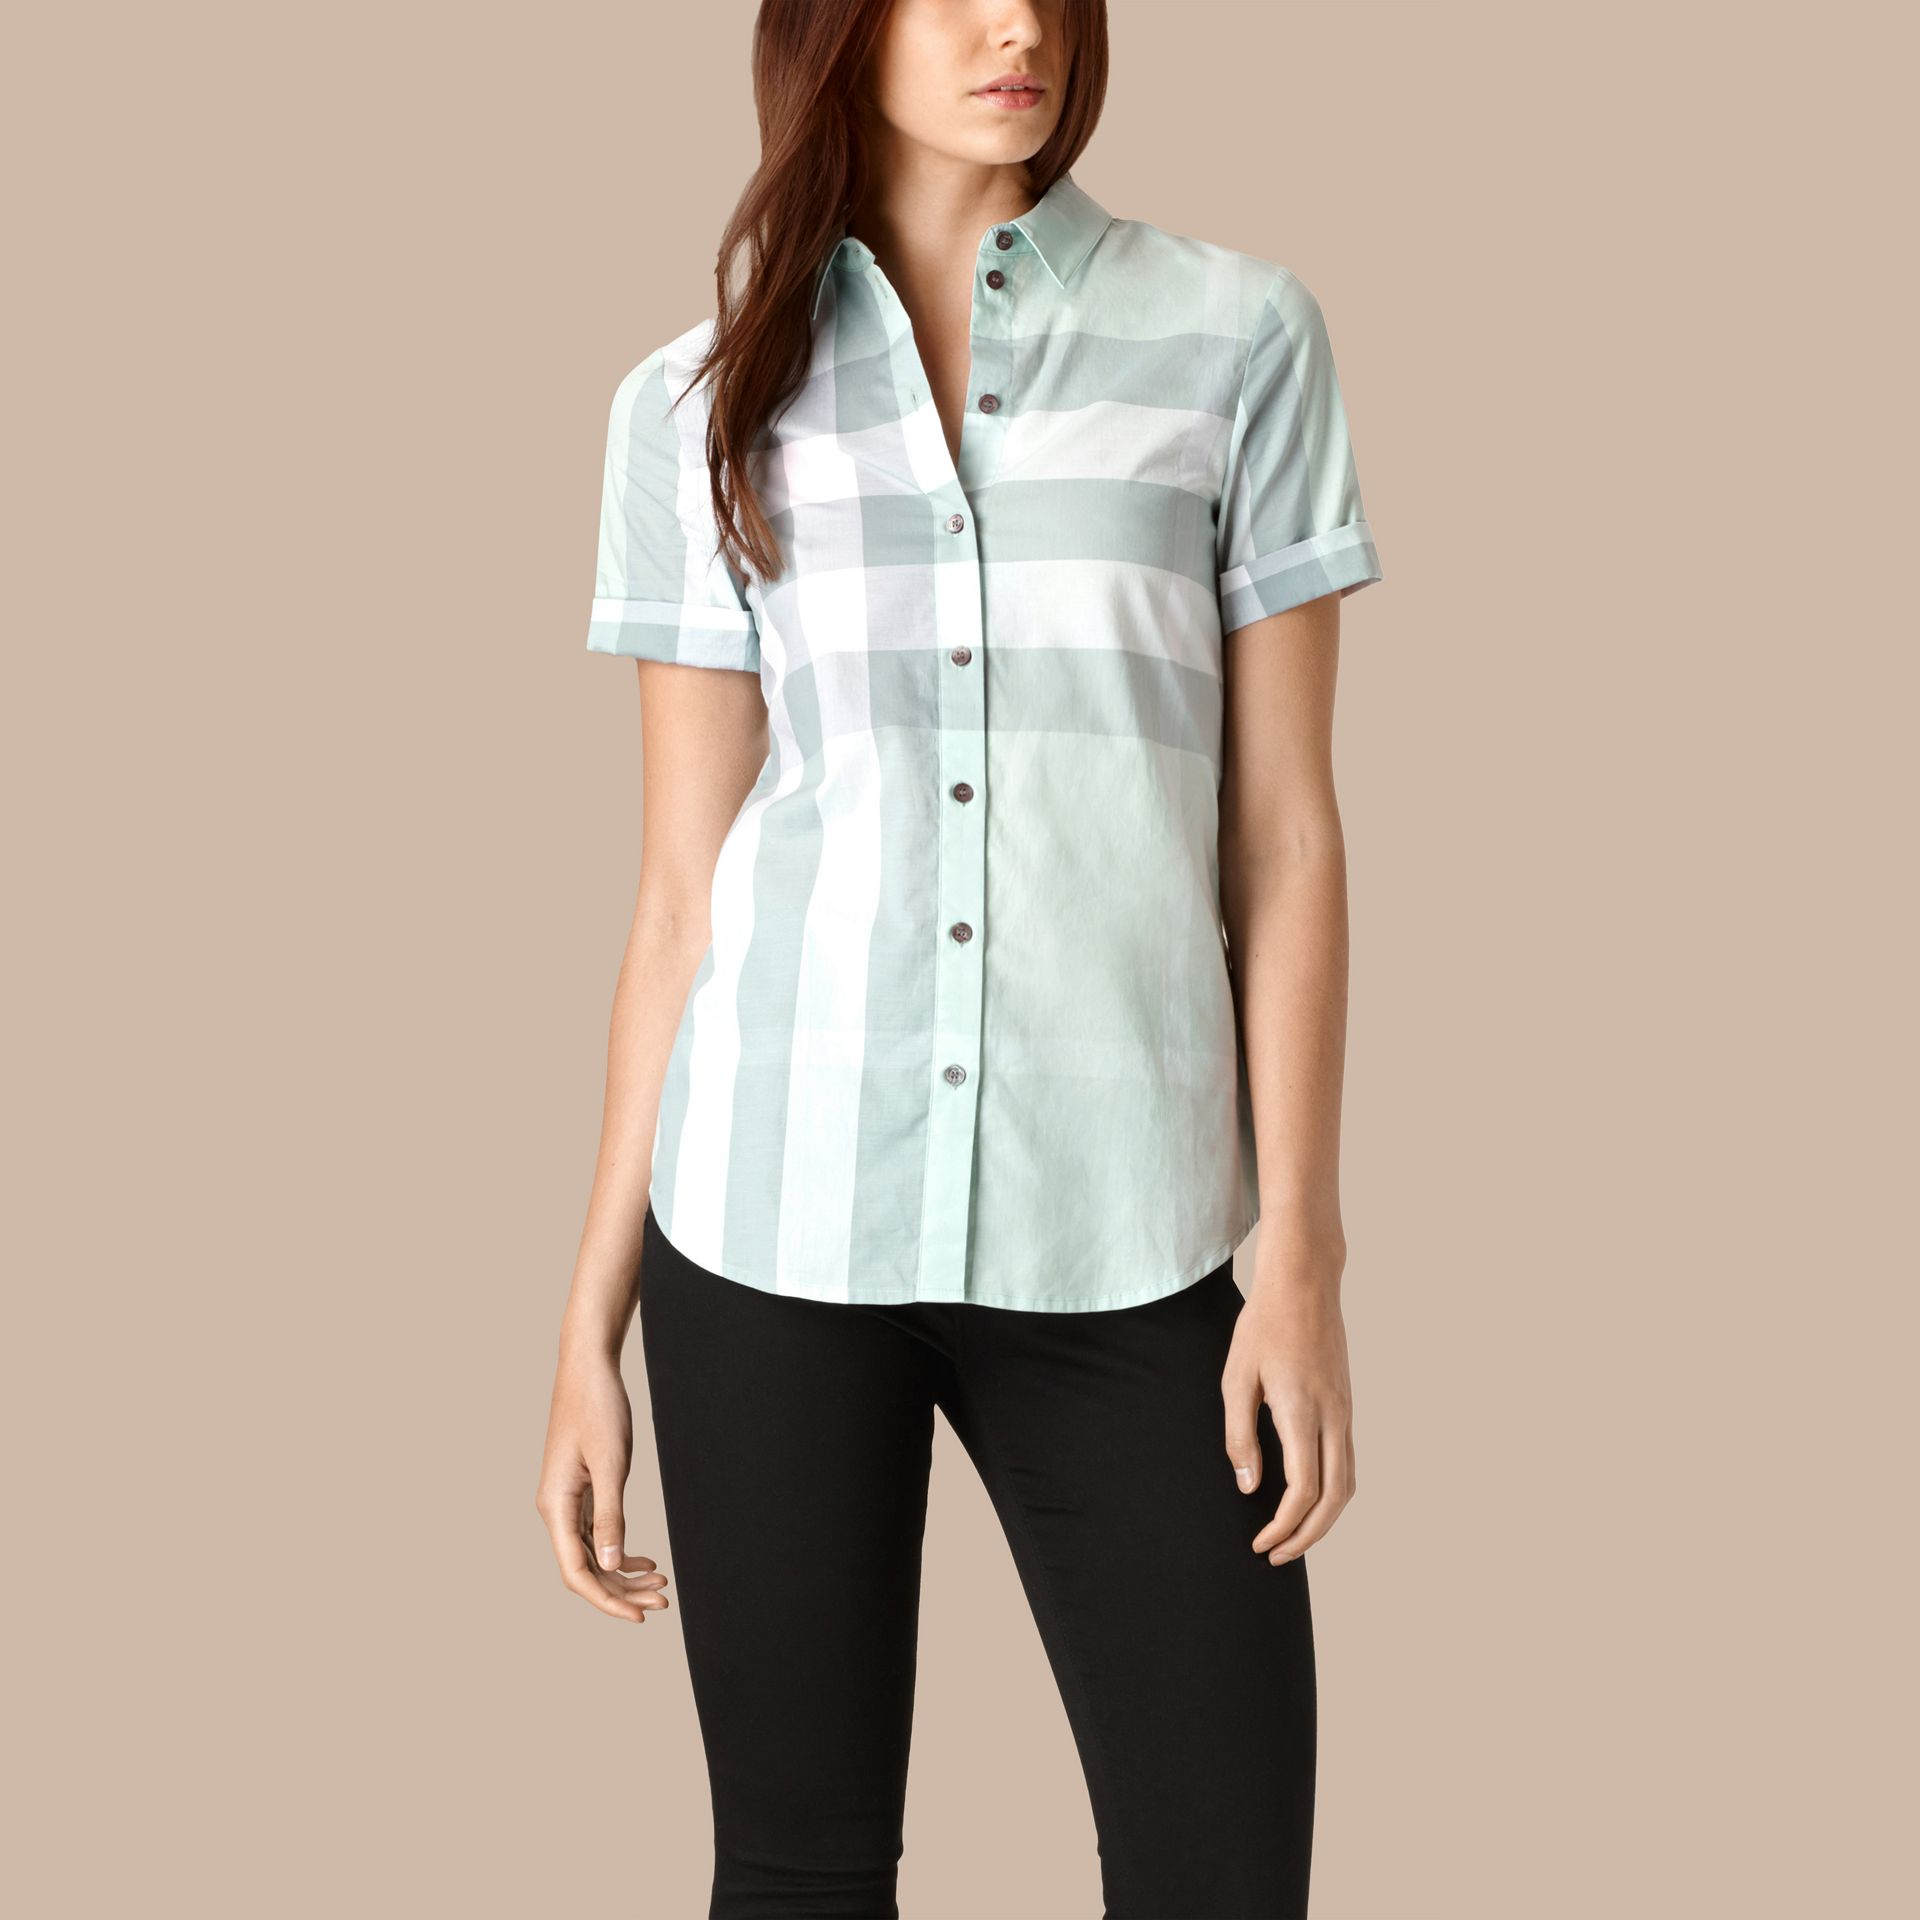 Powder blue Short-sleeved Check Cotton Shirt Powder Blue - gallery image 1